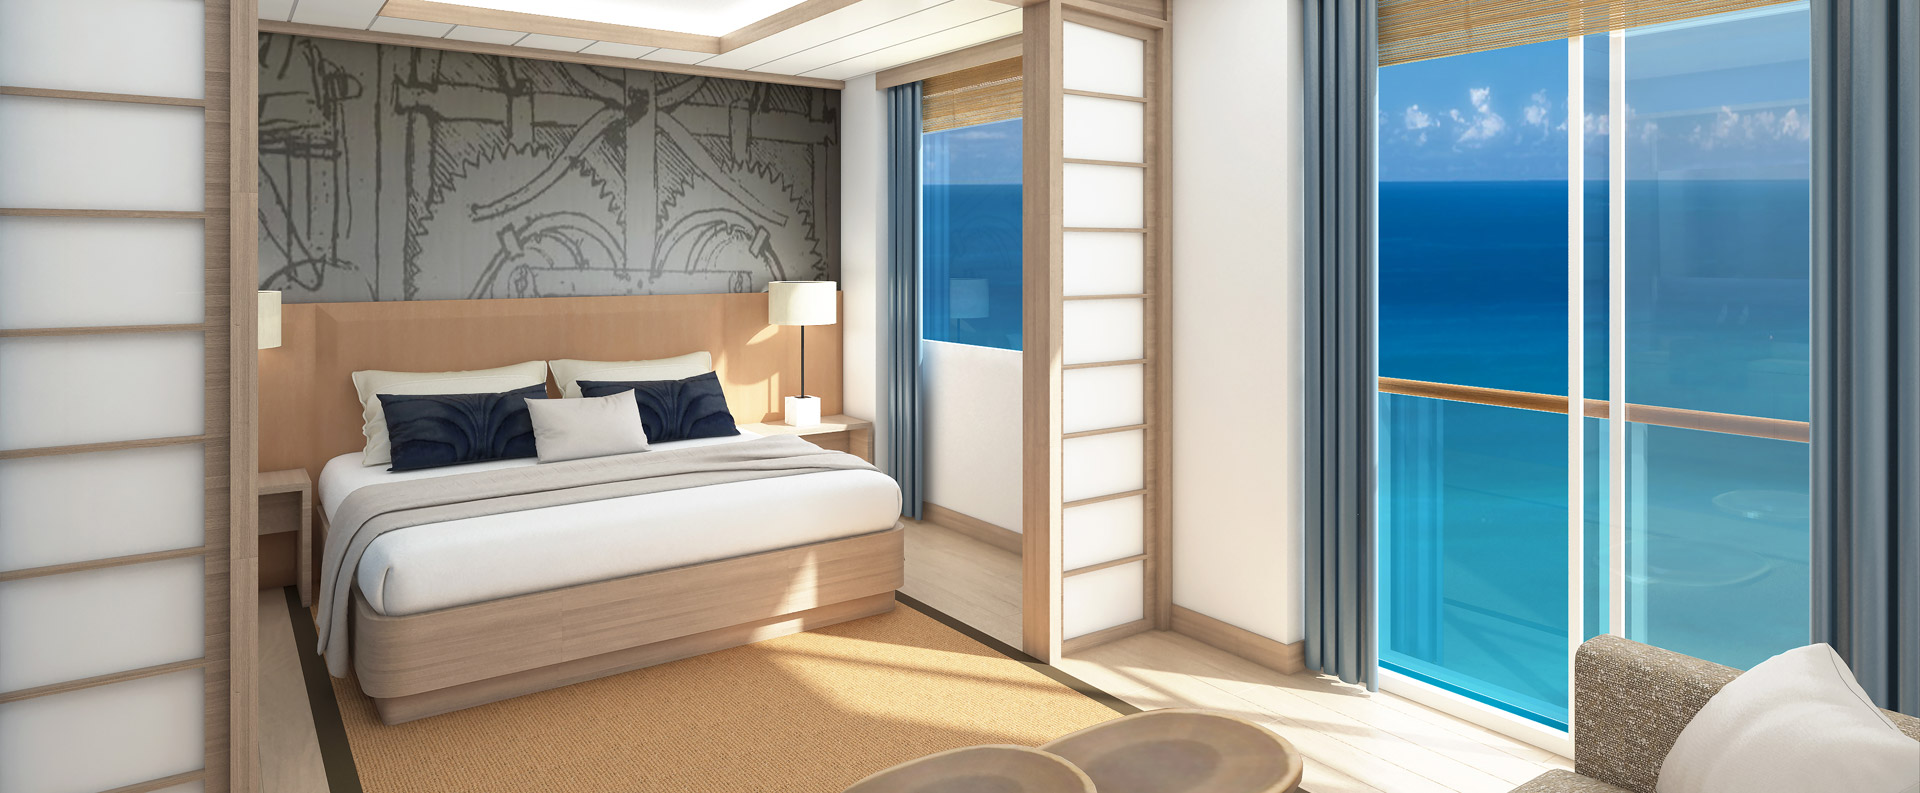 onboard luxury standard suite